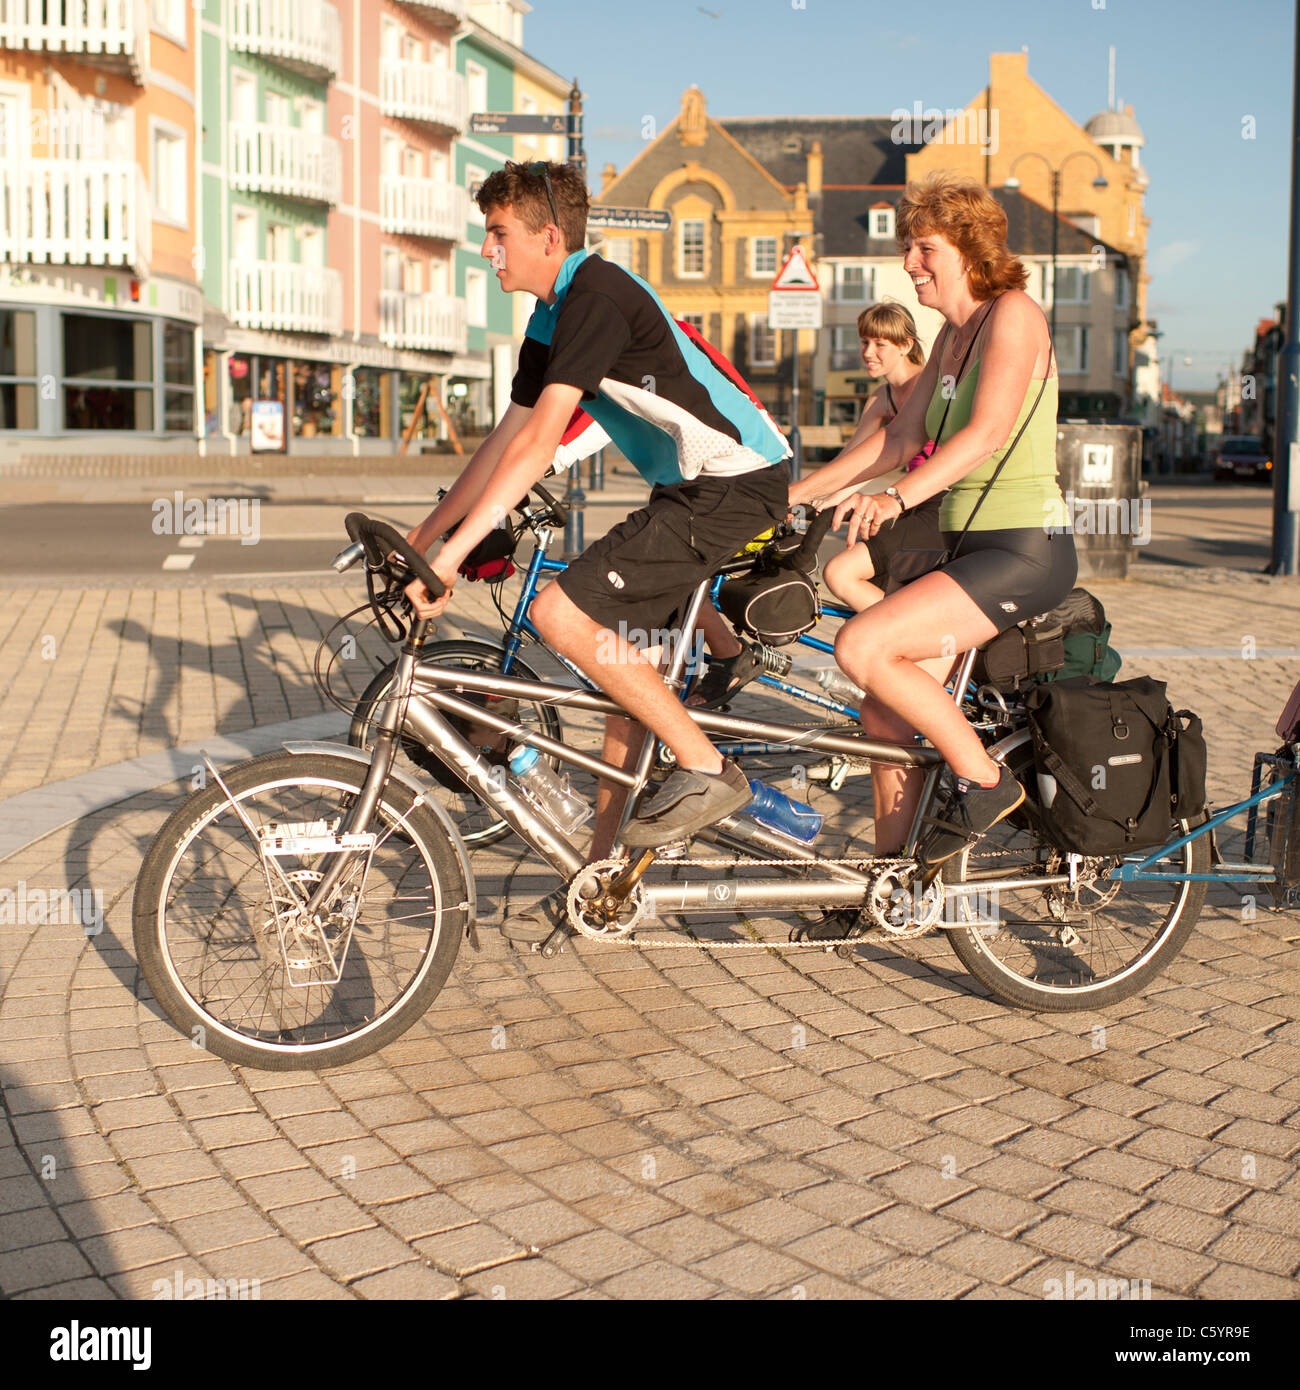 a family riding a pair of tandems on a cycling holiday , Aberystwyth Wales UK - Stock Image